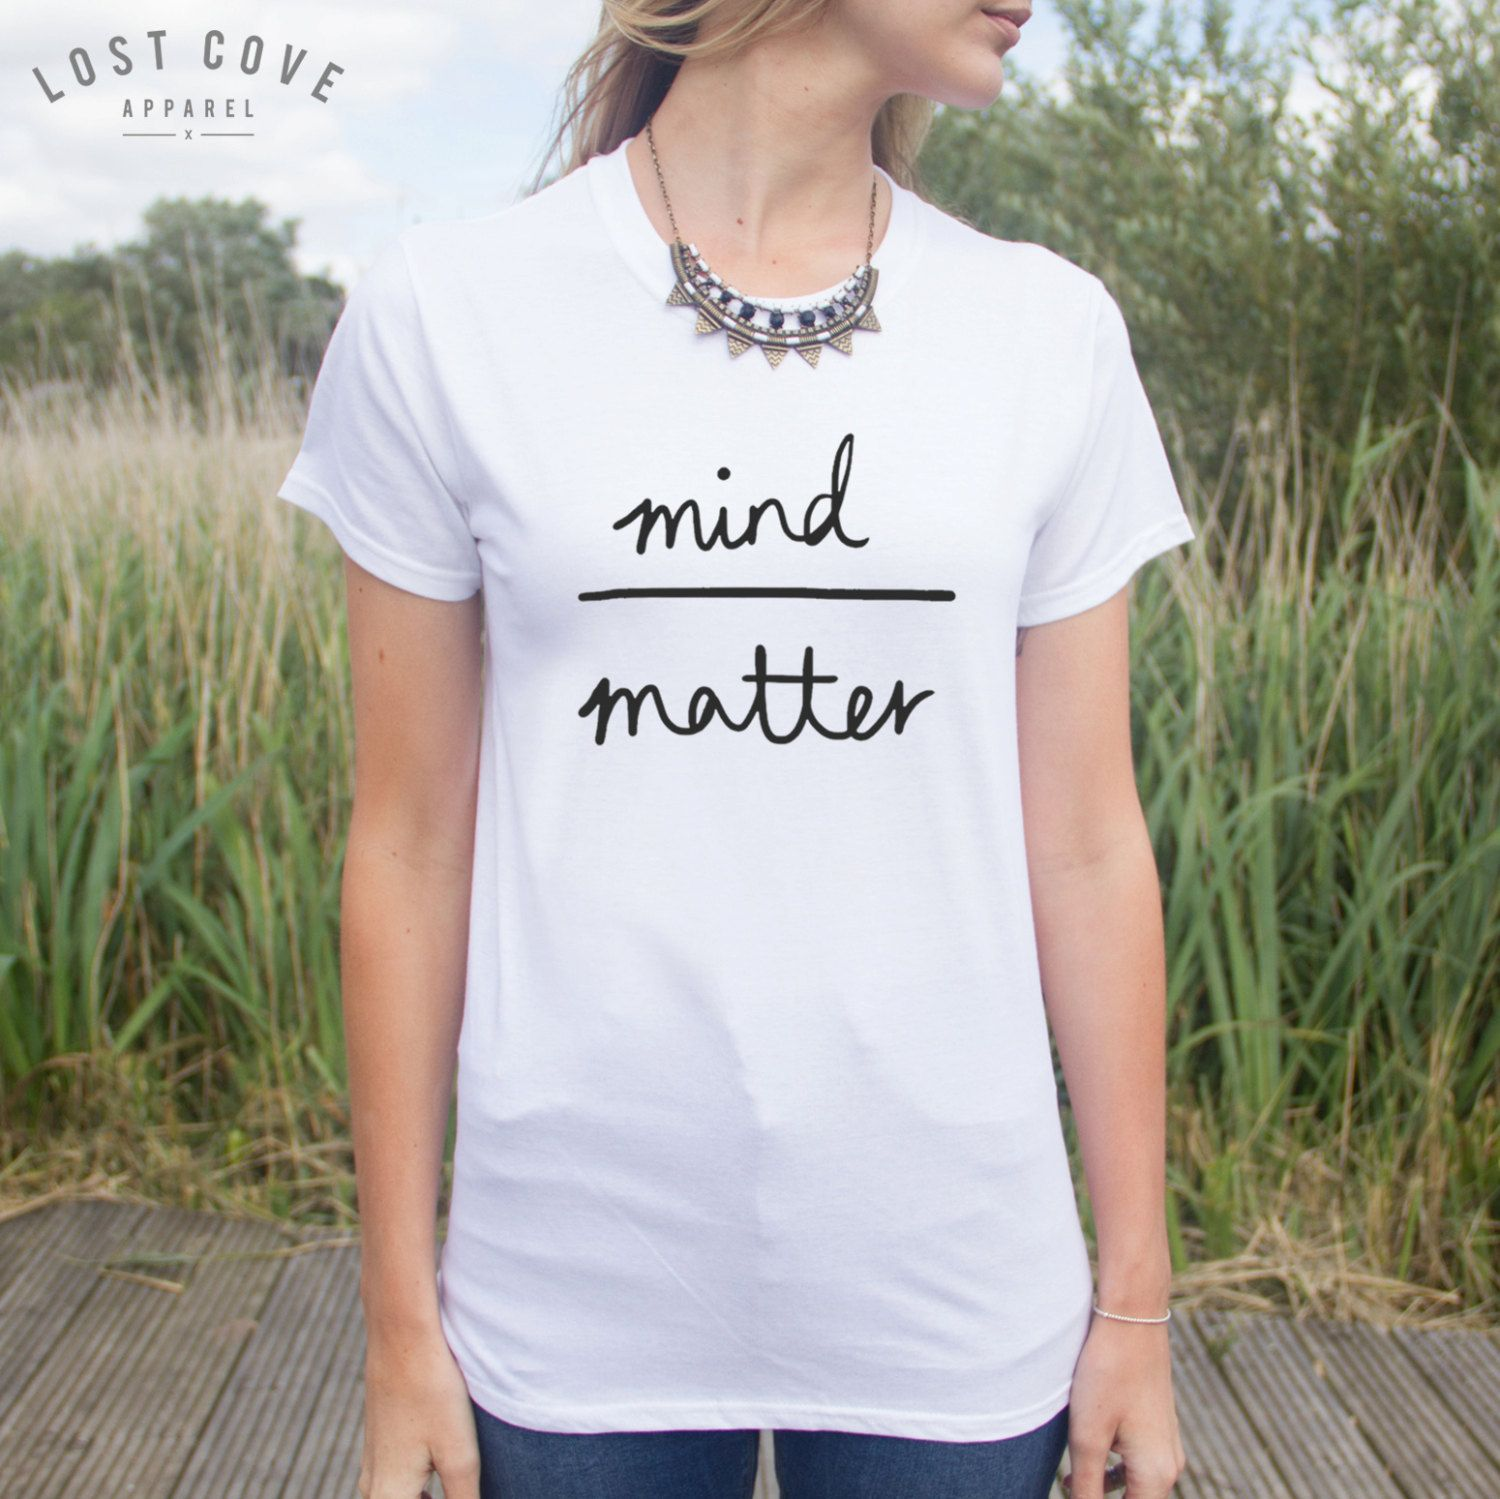 Mind Over Matter T-shirt Top Blogger Hipster Cute Fashion (9.99 GBP) by LostCoveApparel